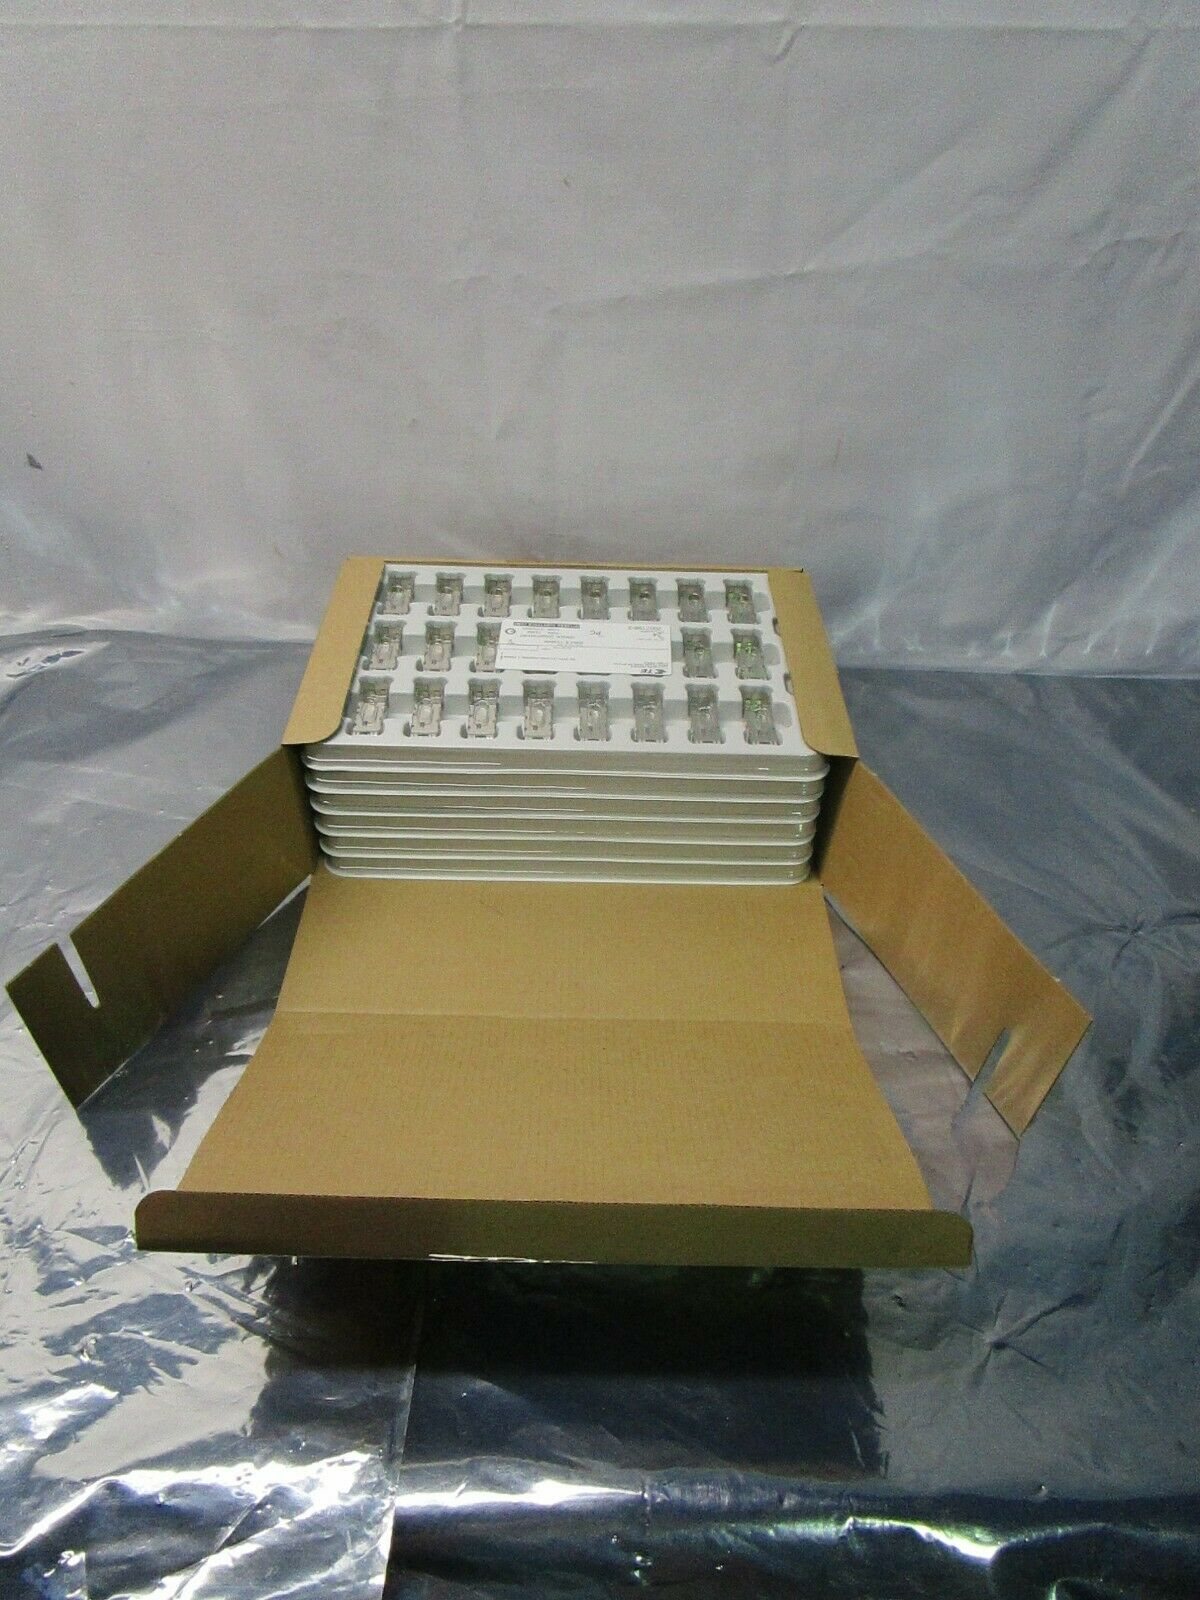 1 Lot of 144 TE connectivity 2007198-2 I/O Connectors SFP+ 1x1 Cage Assy, 102570